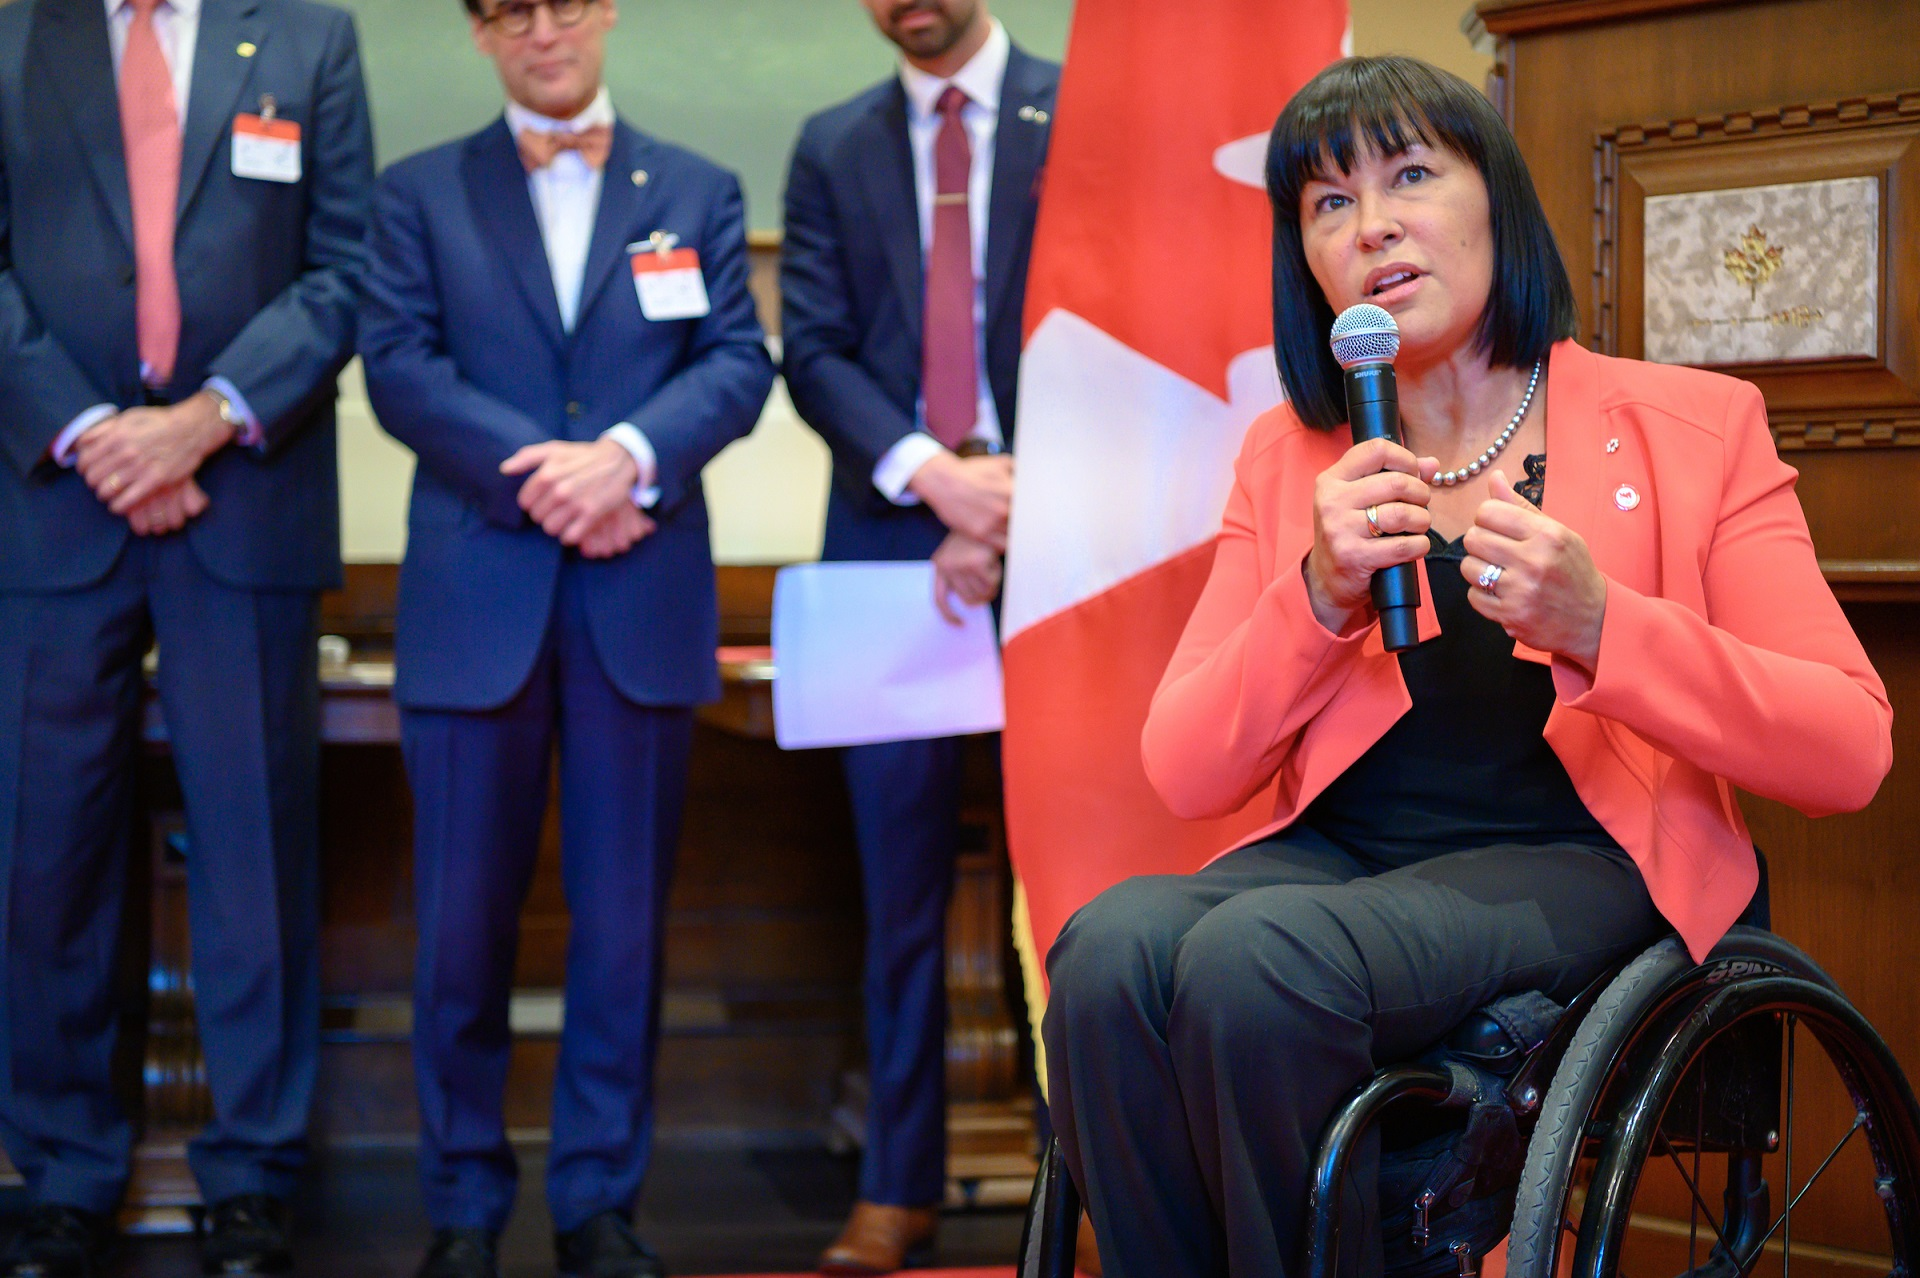 Senator Chantal Petitclerc speaks at the ImagiNation year two event.